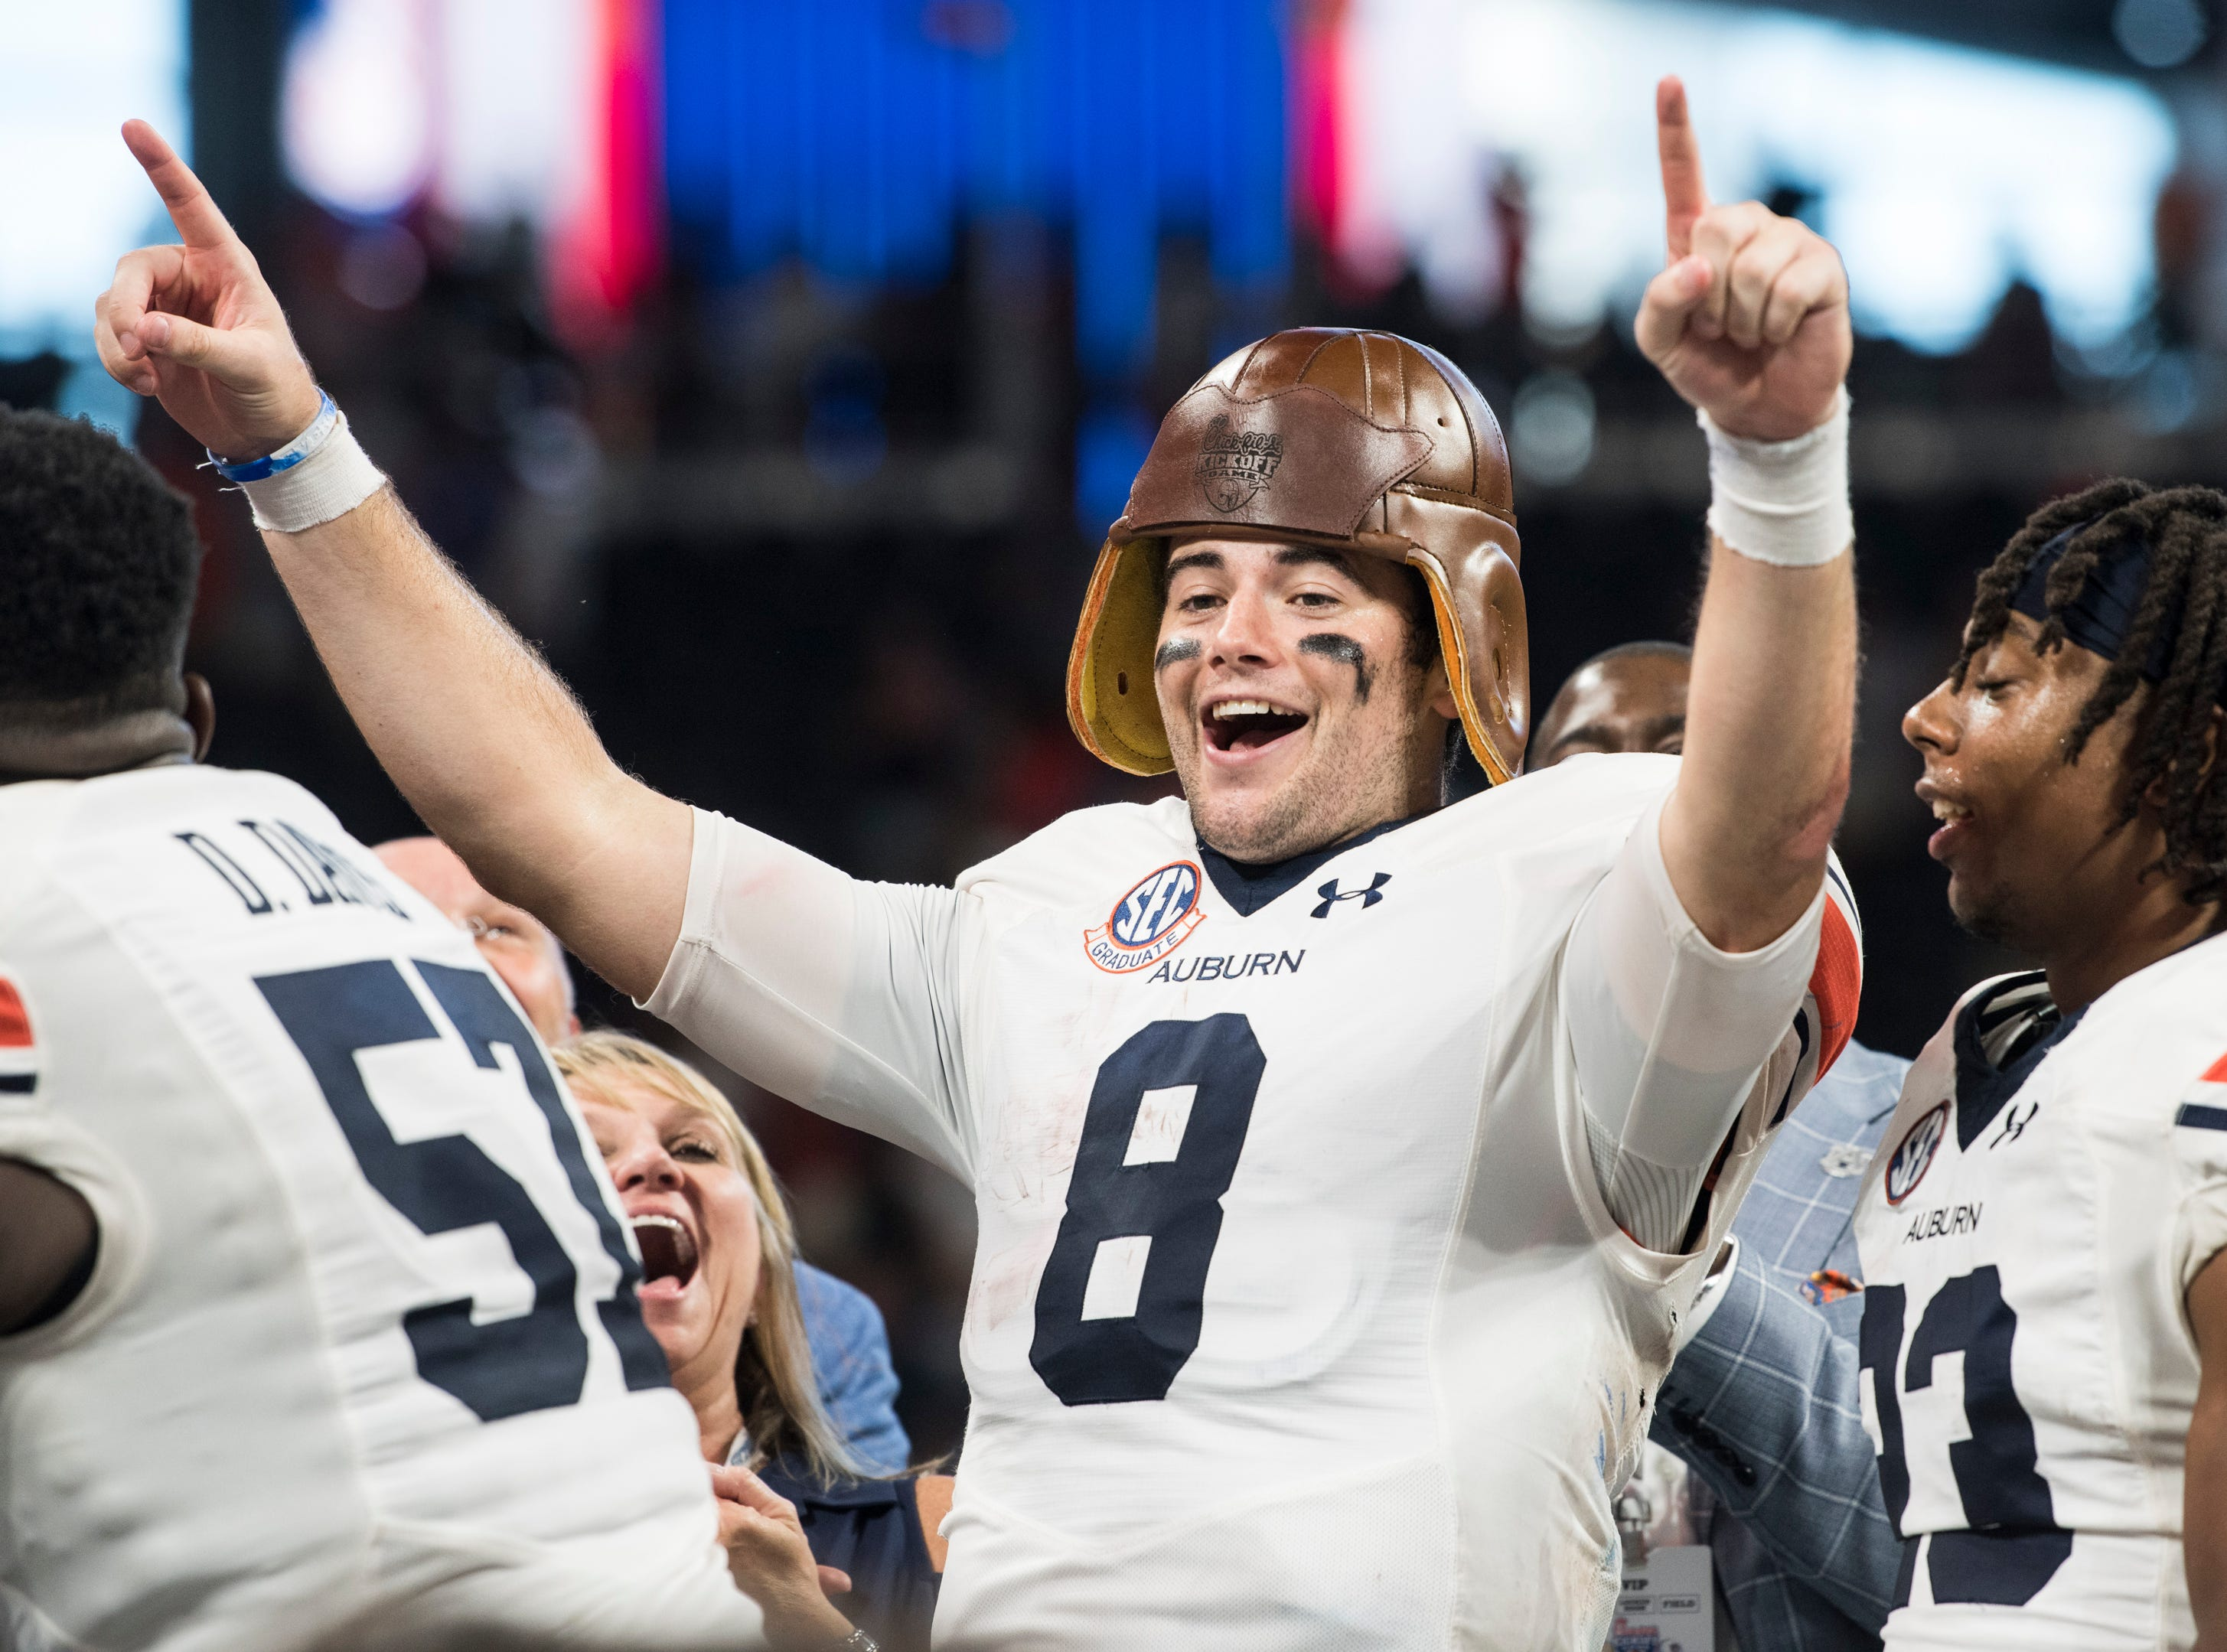 Auburn's Jarrett Stidham (8) wears the old leather helmet trophy at Mercedes-Benz Stadium in Atlanta, Ga., on Saturday, Sept. 1, 2018. Auburn defeated Washington 21-16 in the Chick-fil-a Kickoff Game.